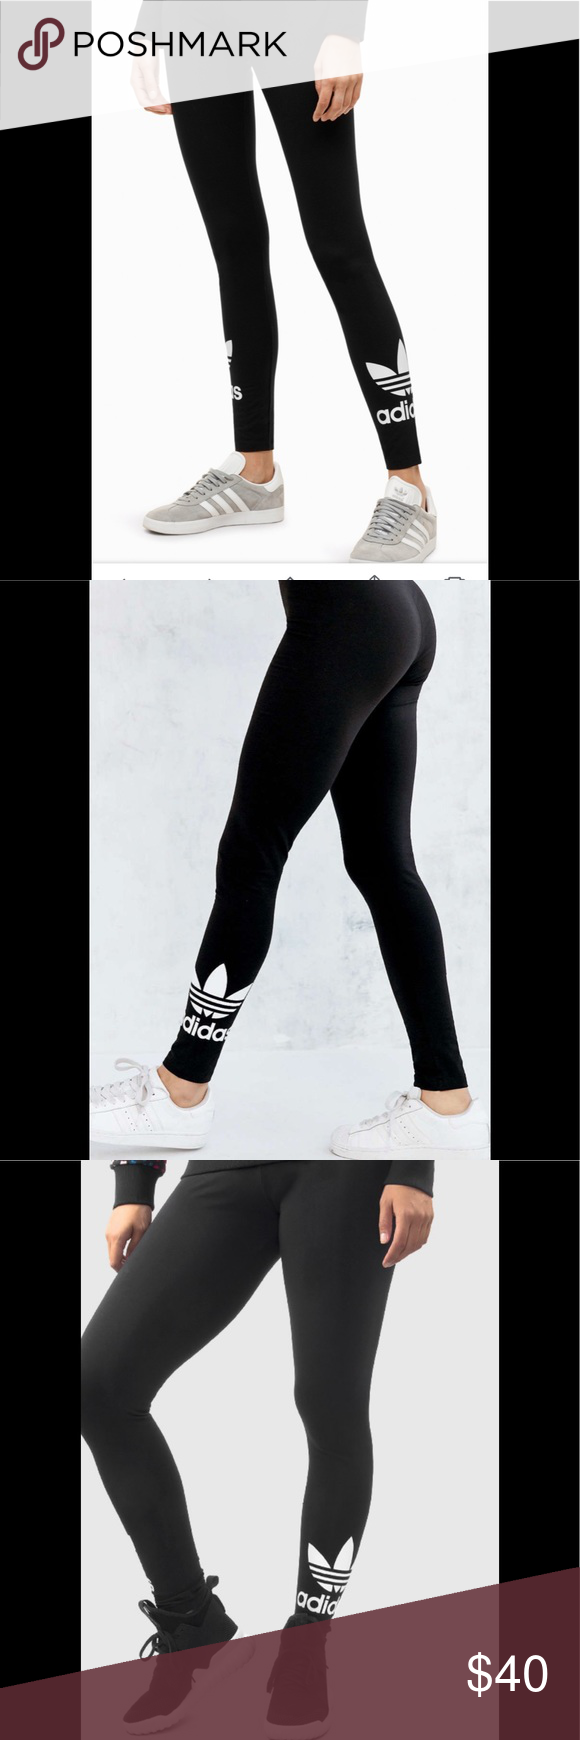 ????Adidas Trefoil Leggings???? Authentic Brand new with tag